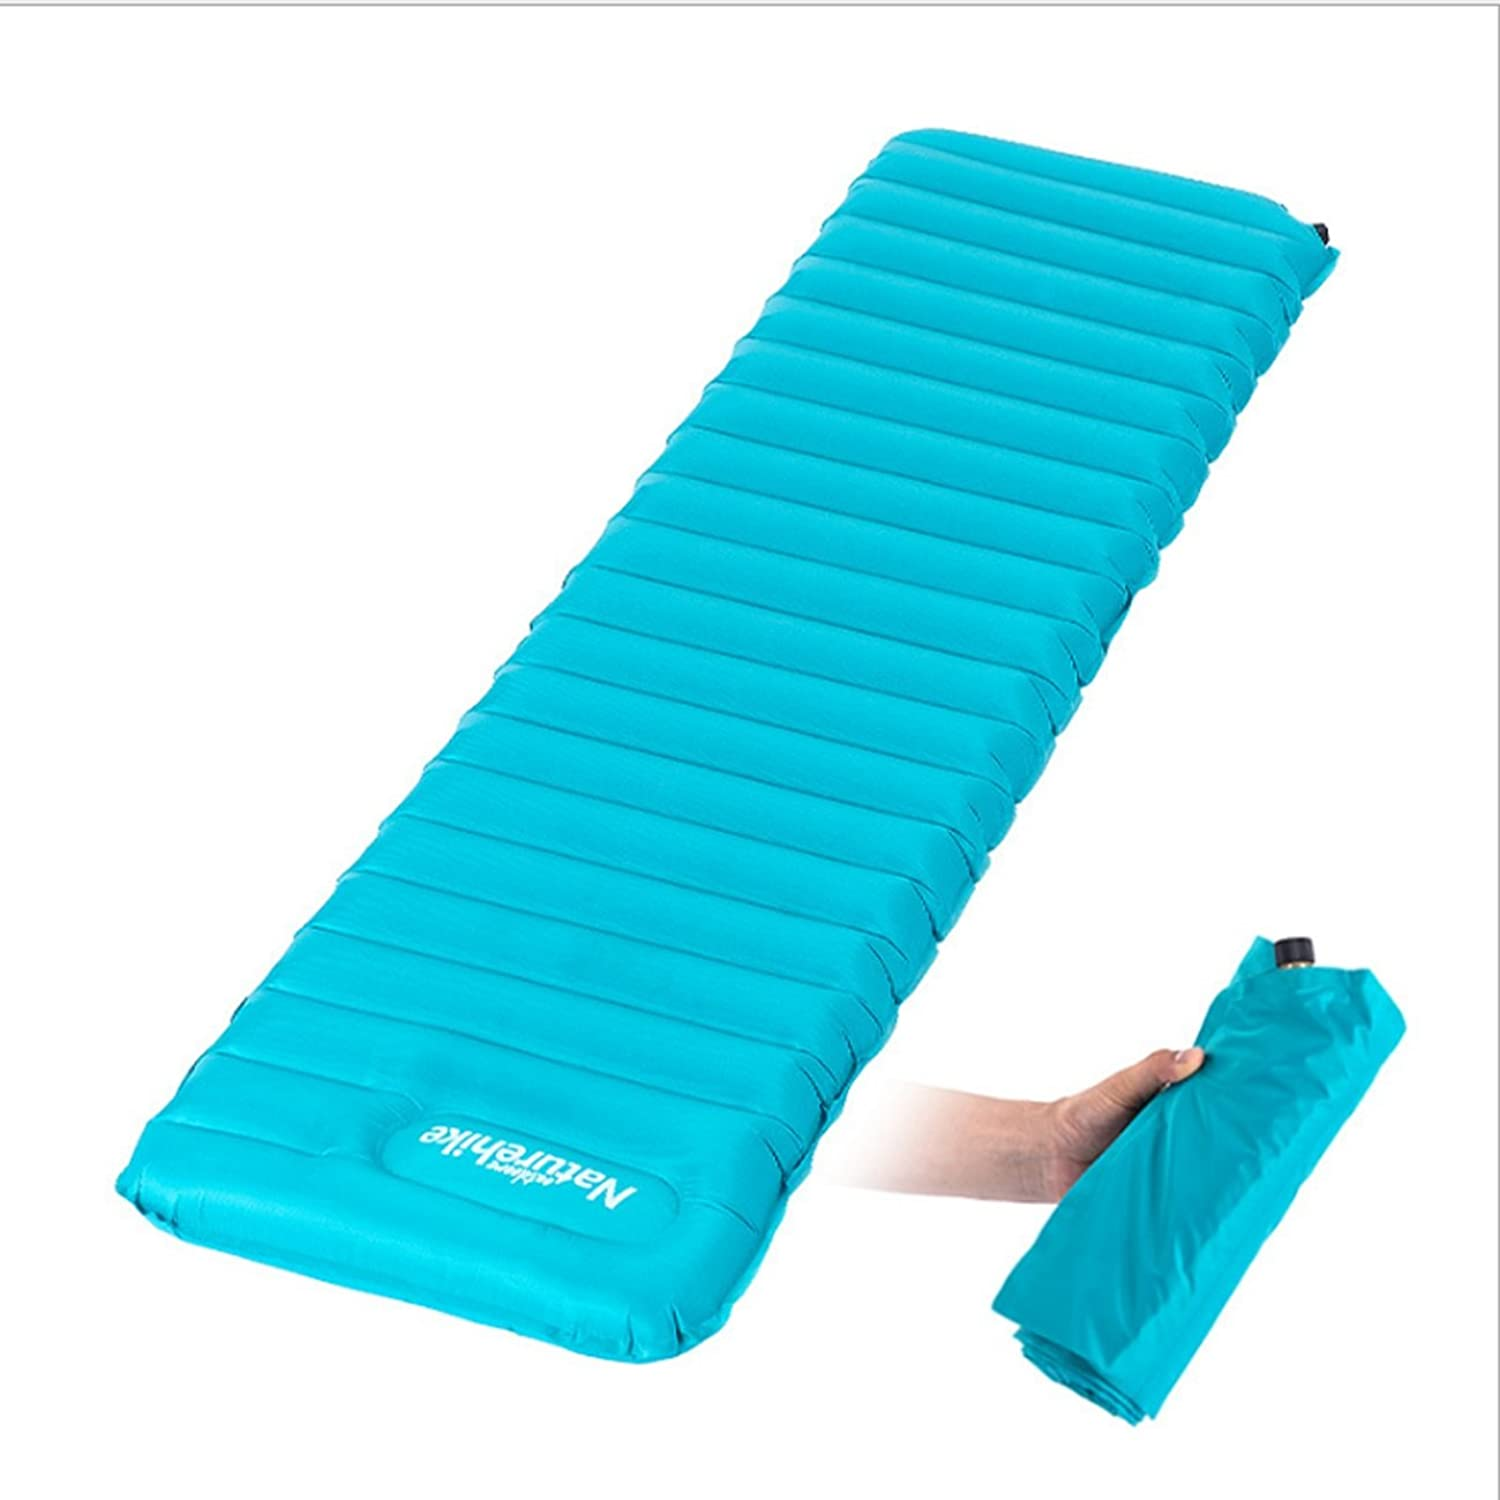 Inflatable Camping Roll Mat Self Quick Inflating Sleeping Mat with Repair Patches for Camping,Hiking,Travelling,Backpacking